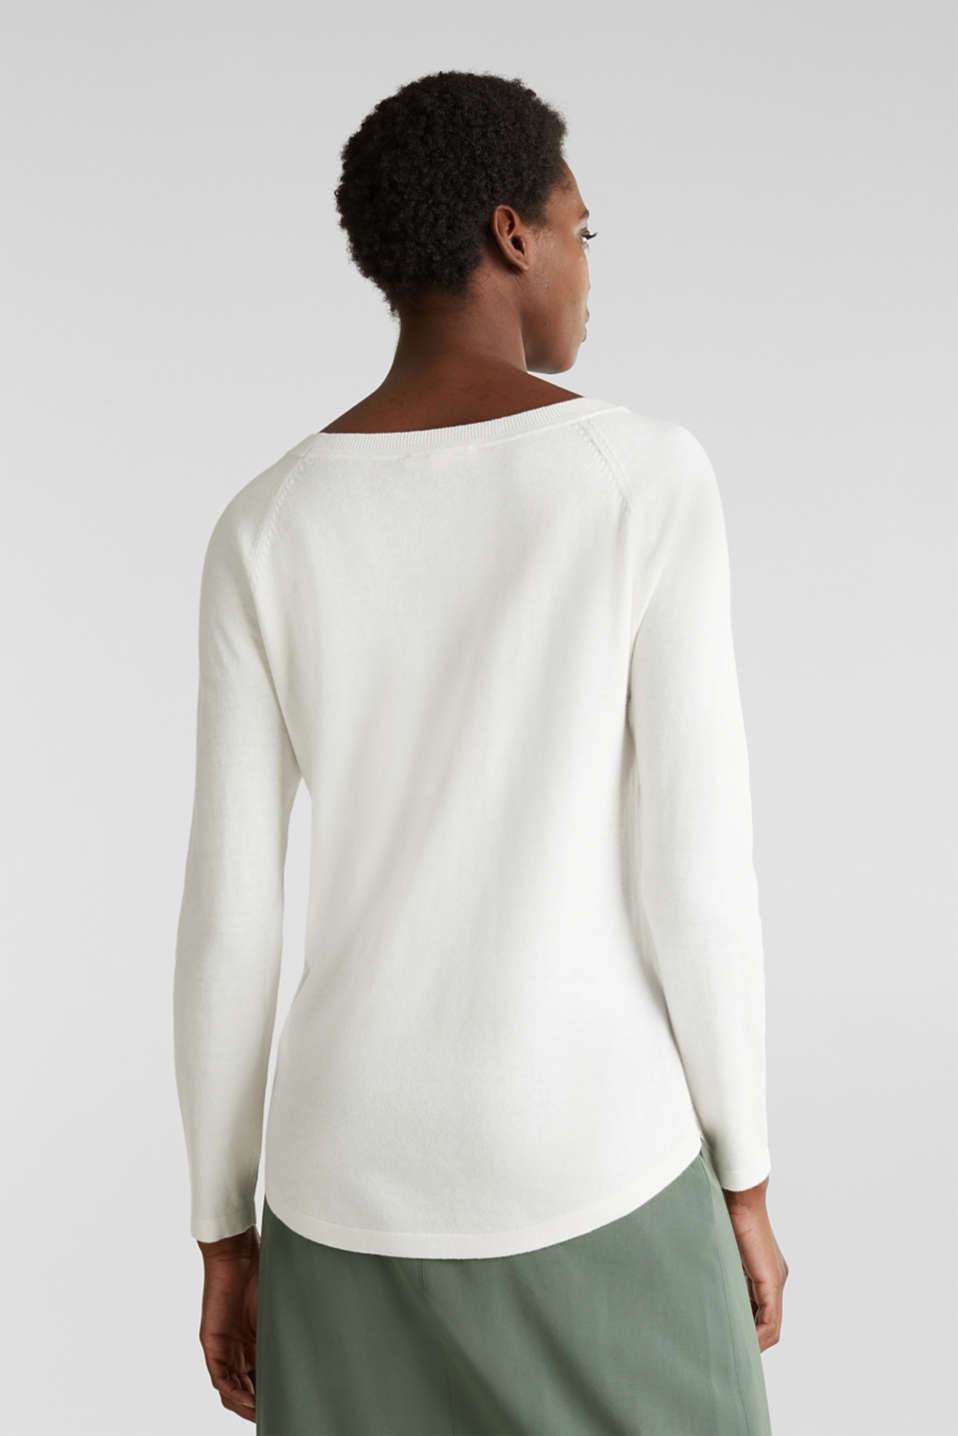 With linen: Jumper with open-work patterned details, OFF WHITE, detail image number 3